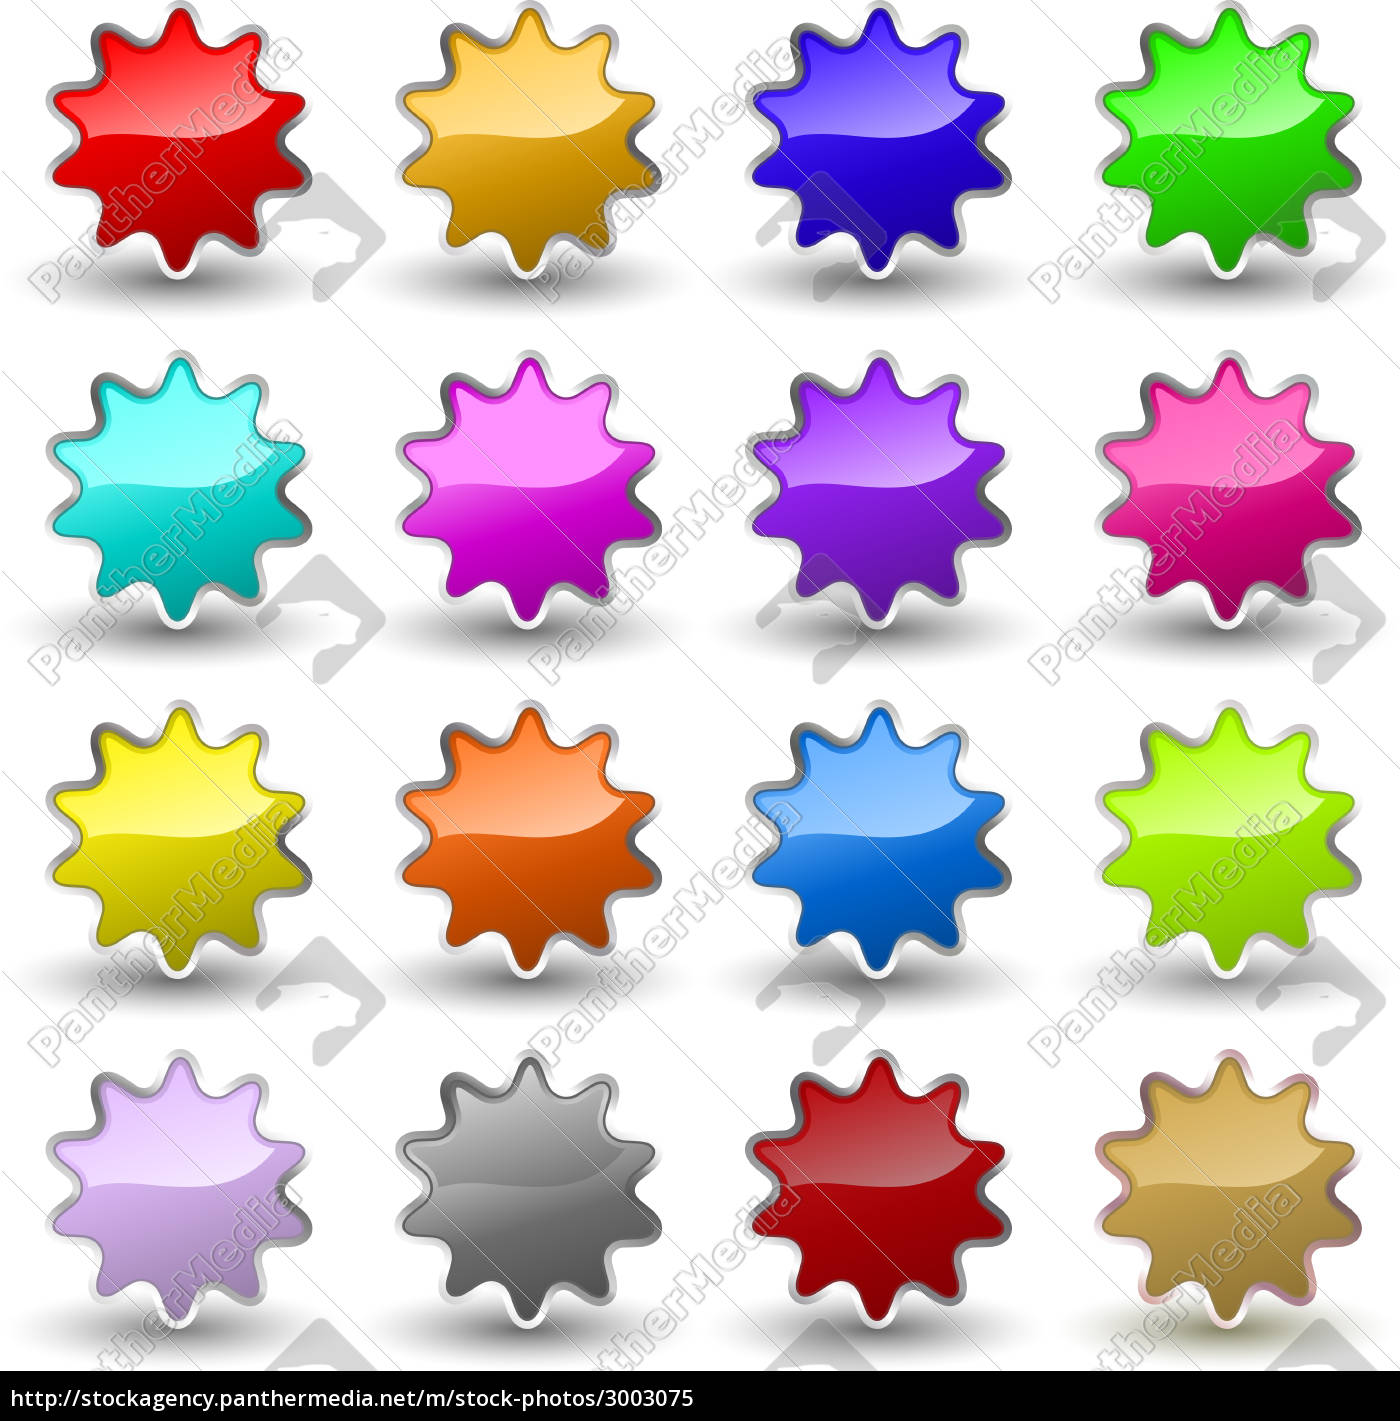 glossy, star, icons - 3003075